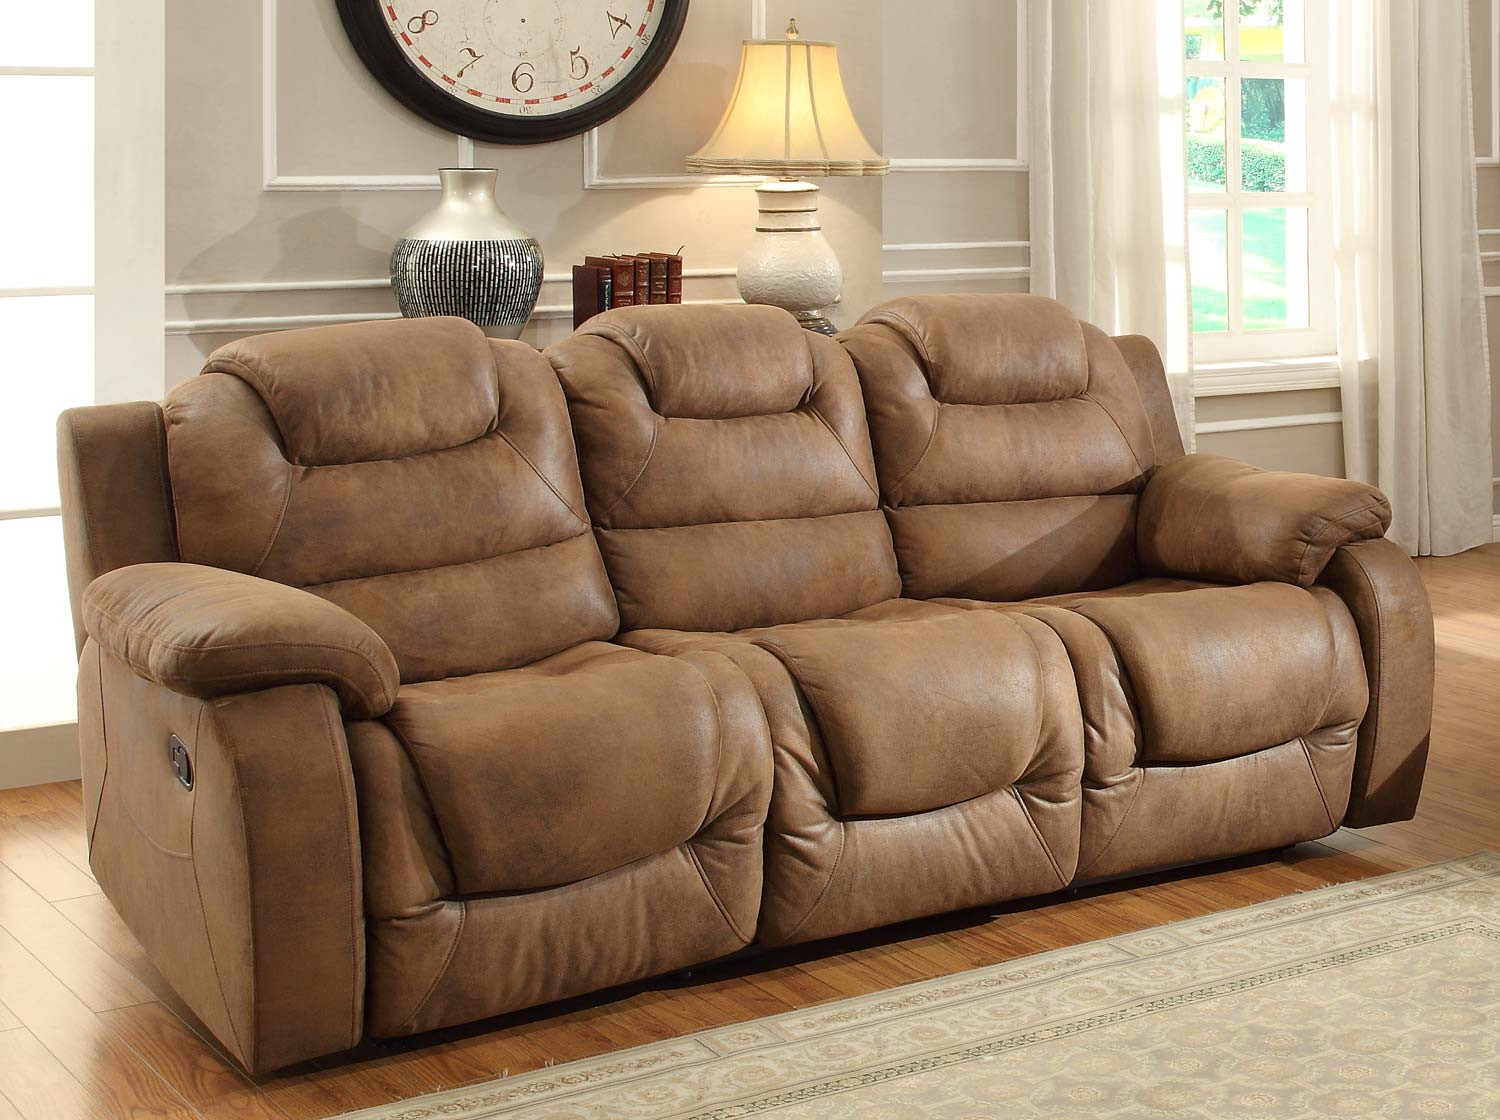 Charmant Homelegance Hoyt Double Recliner Sofa   Brown Microfiber